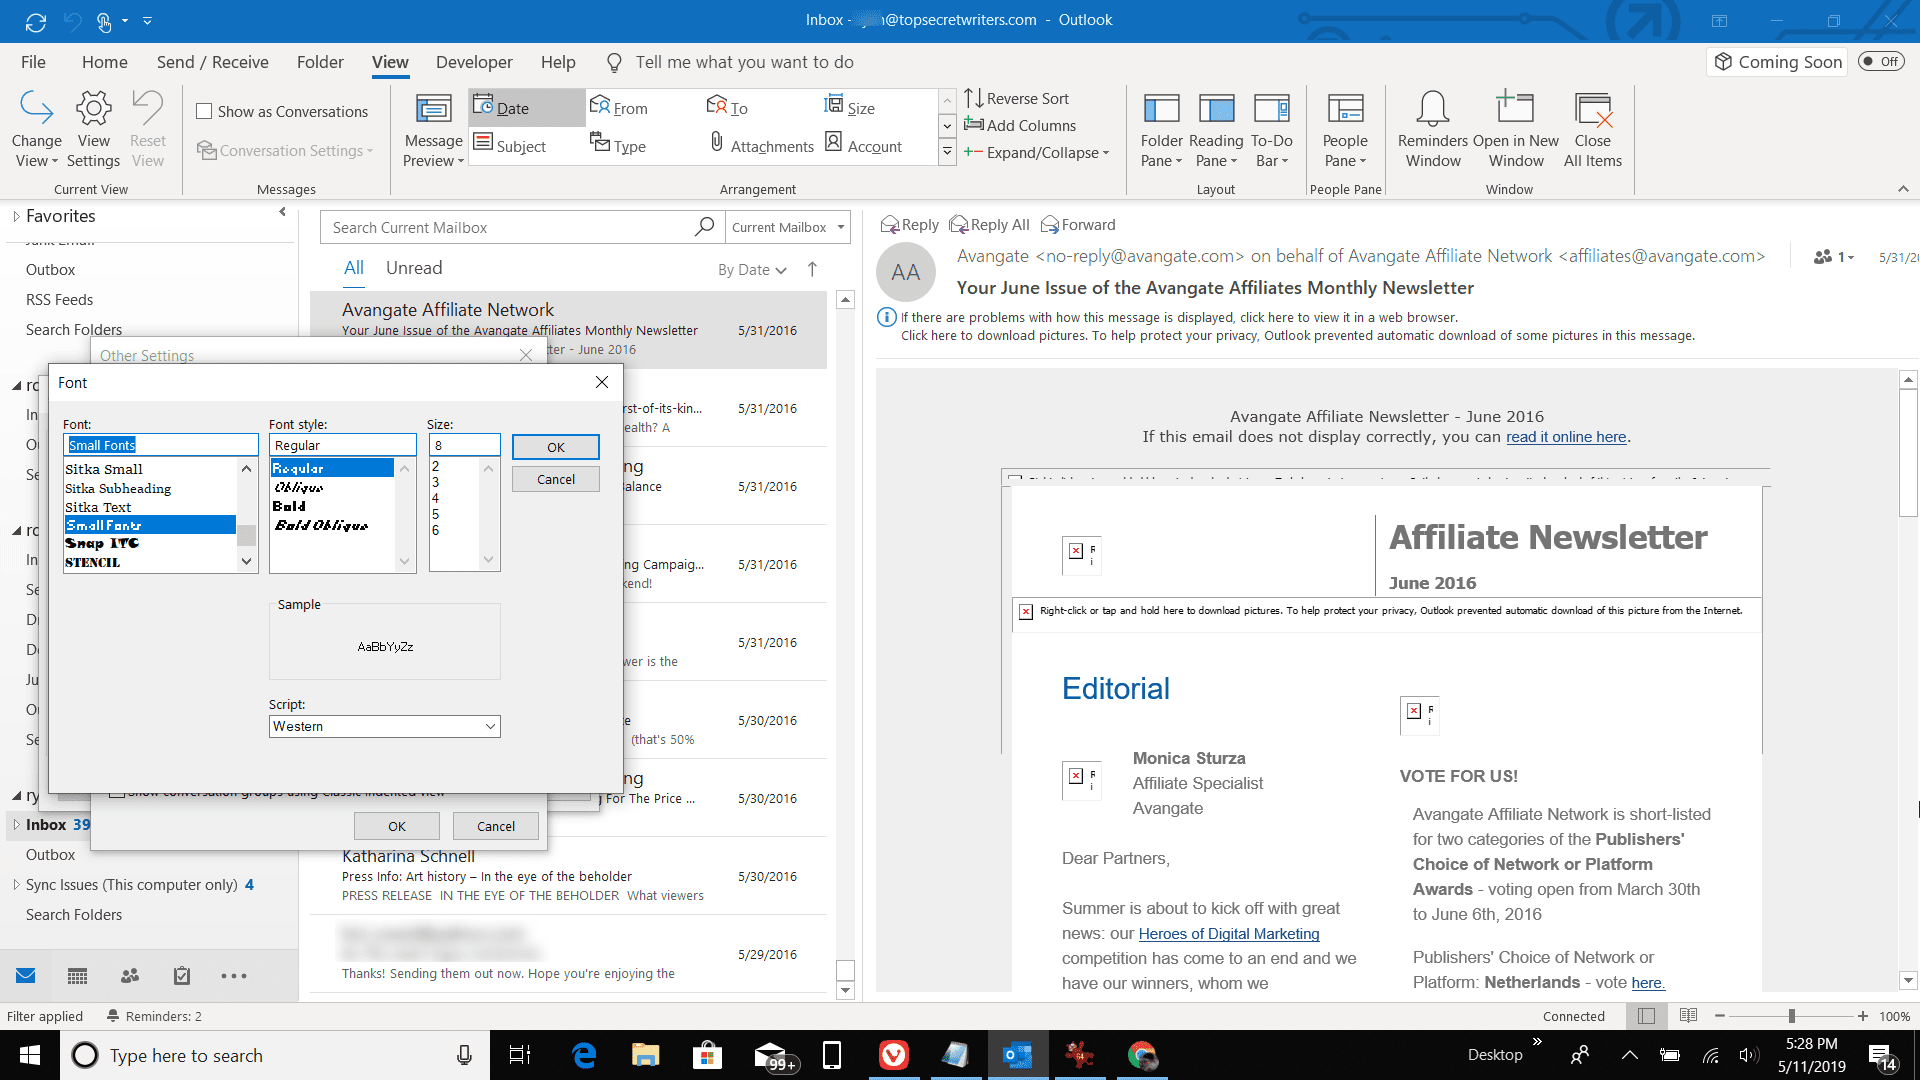 How To Change The Font Size Of The Outlook Message List